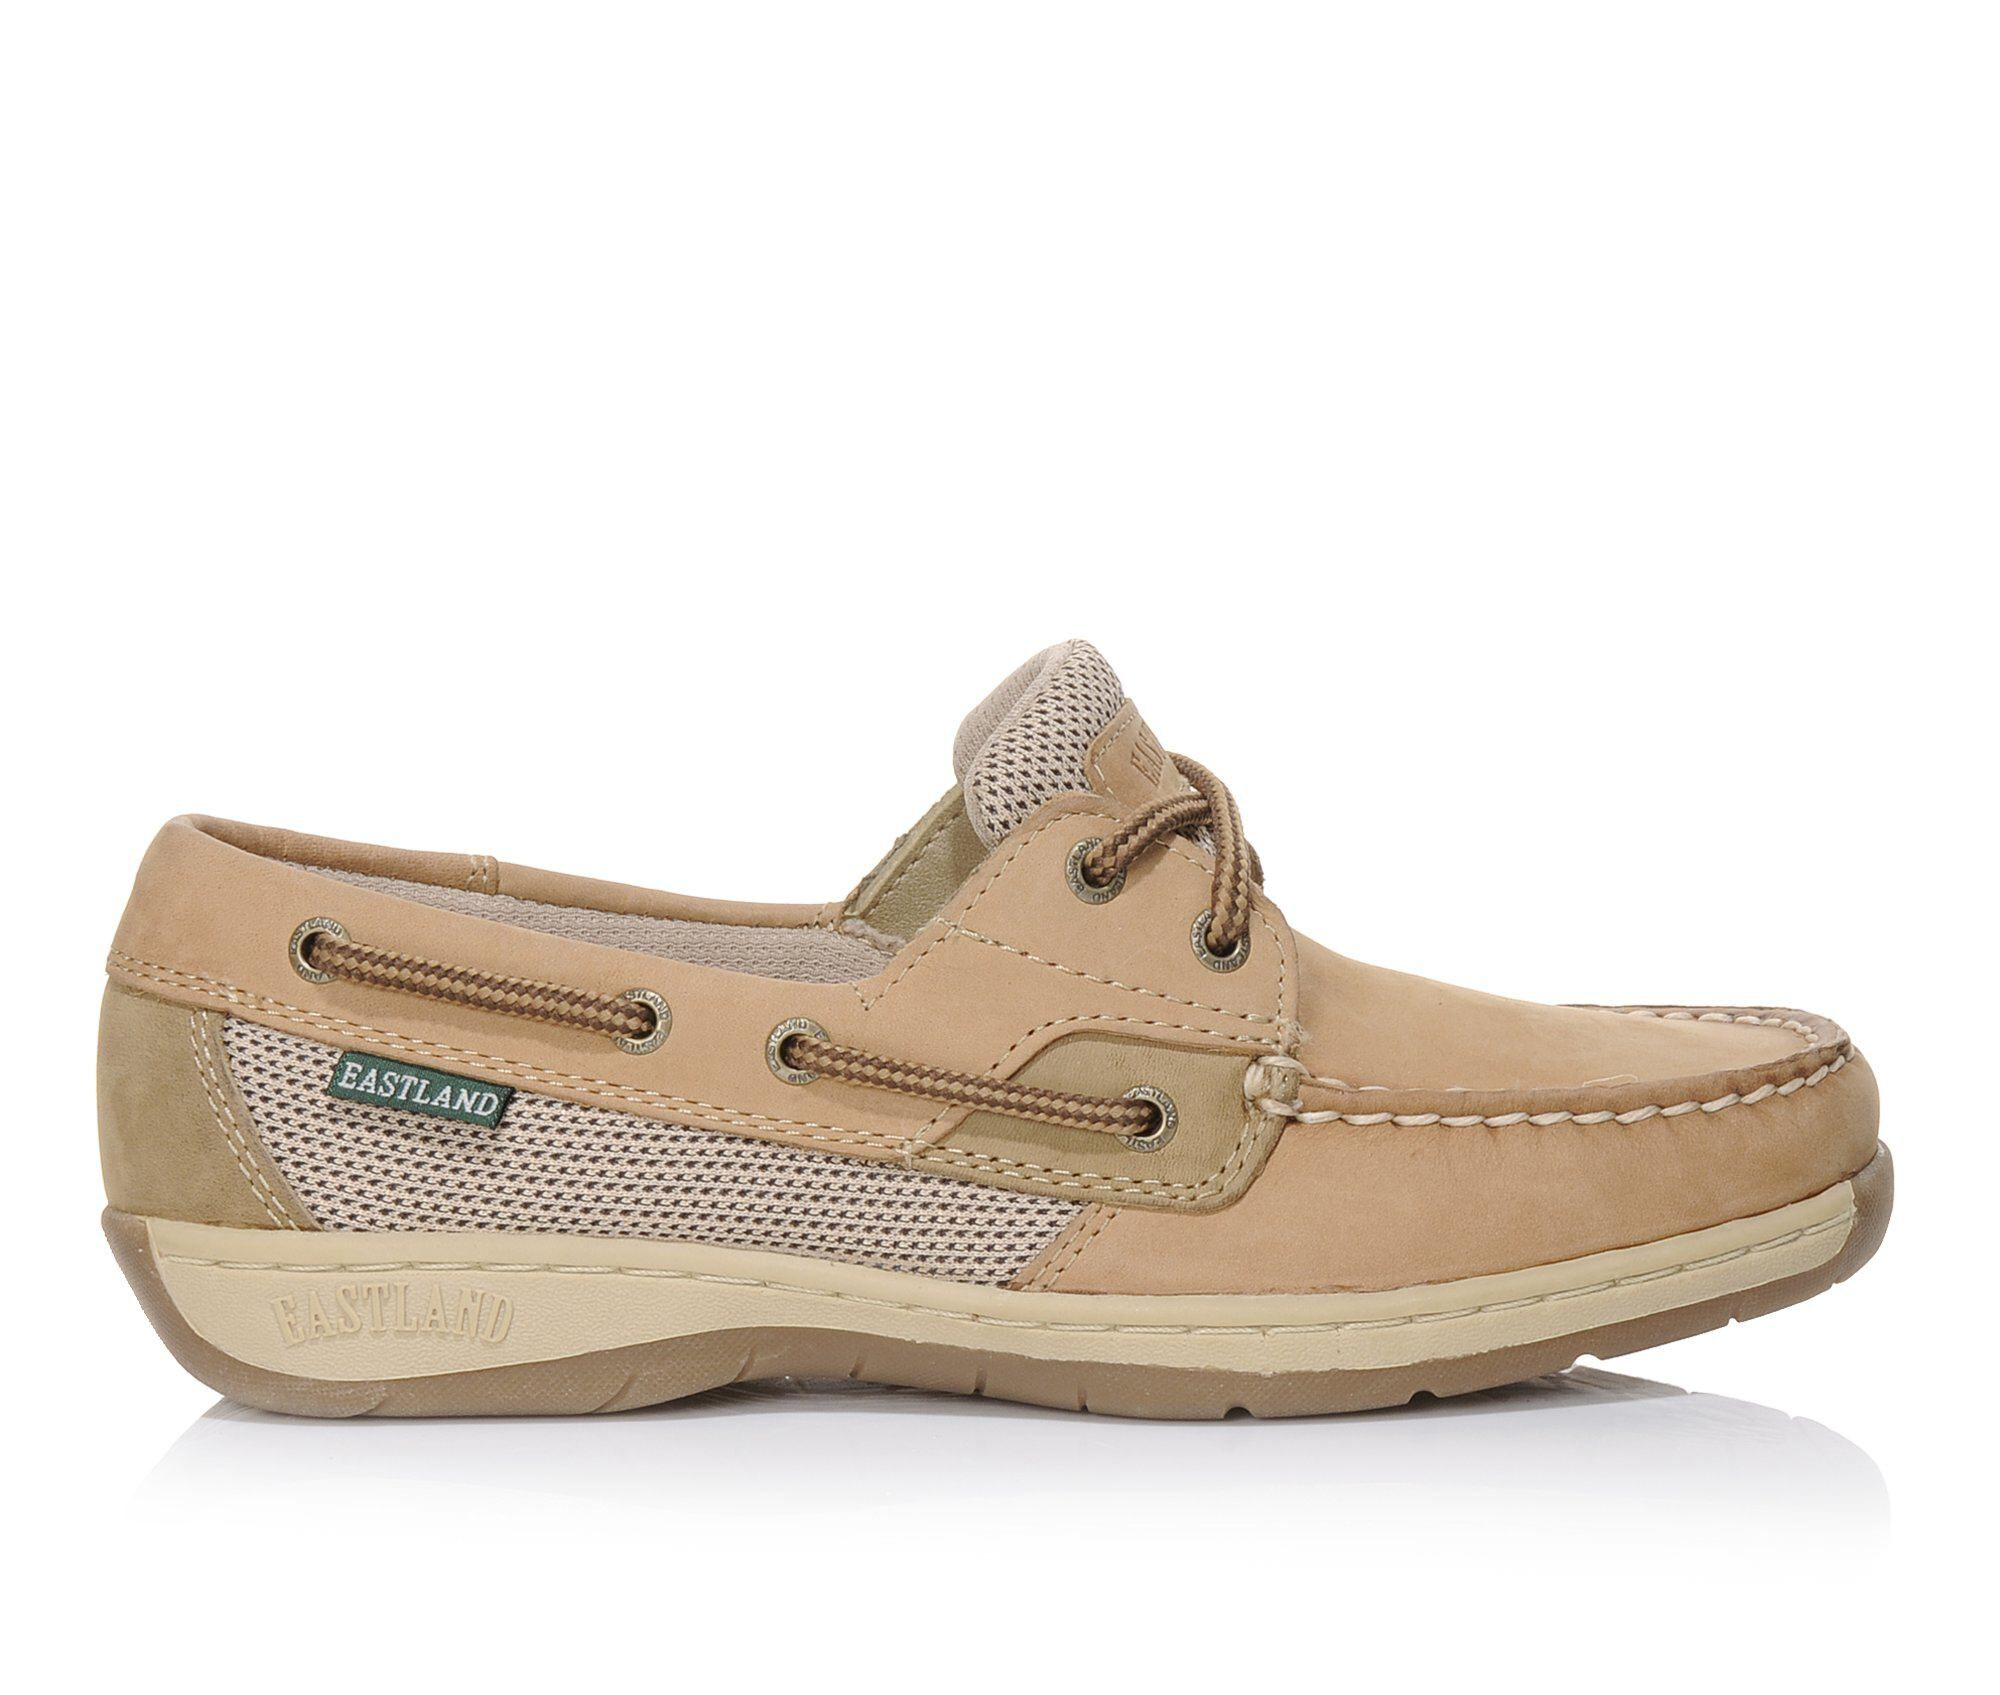 Women's Eastland Solstice Boat Shoes Tan